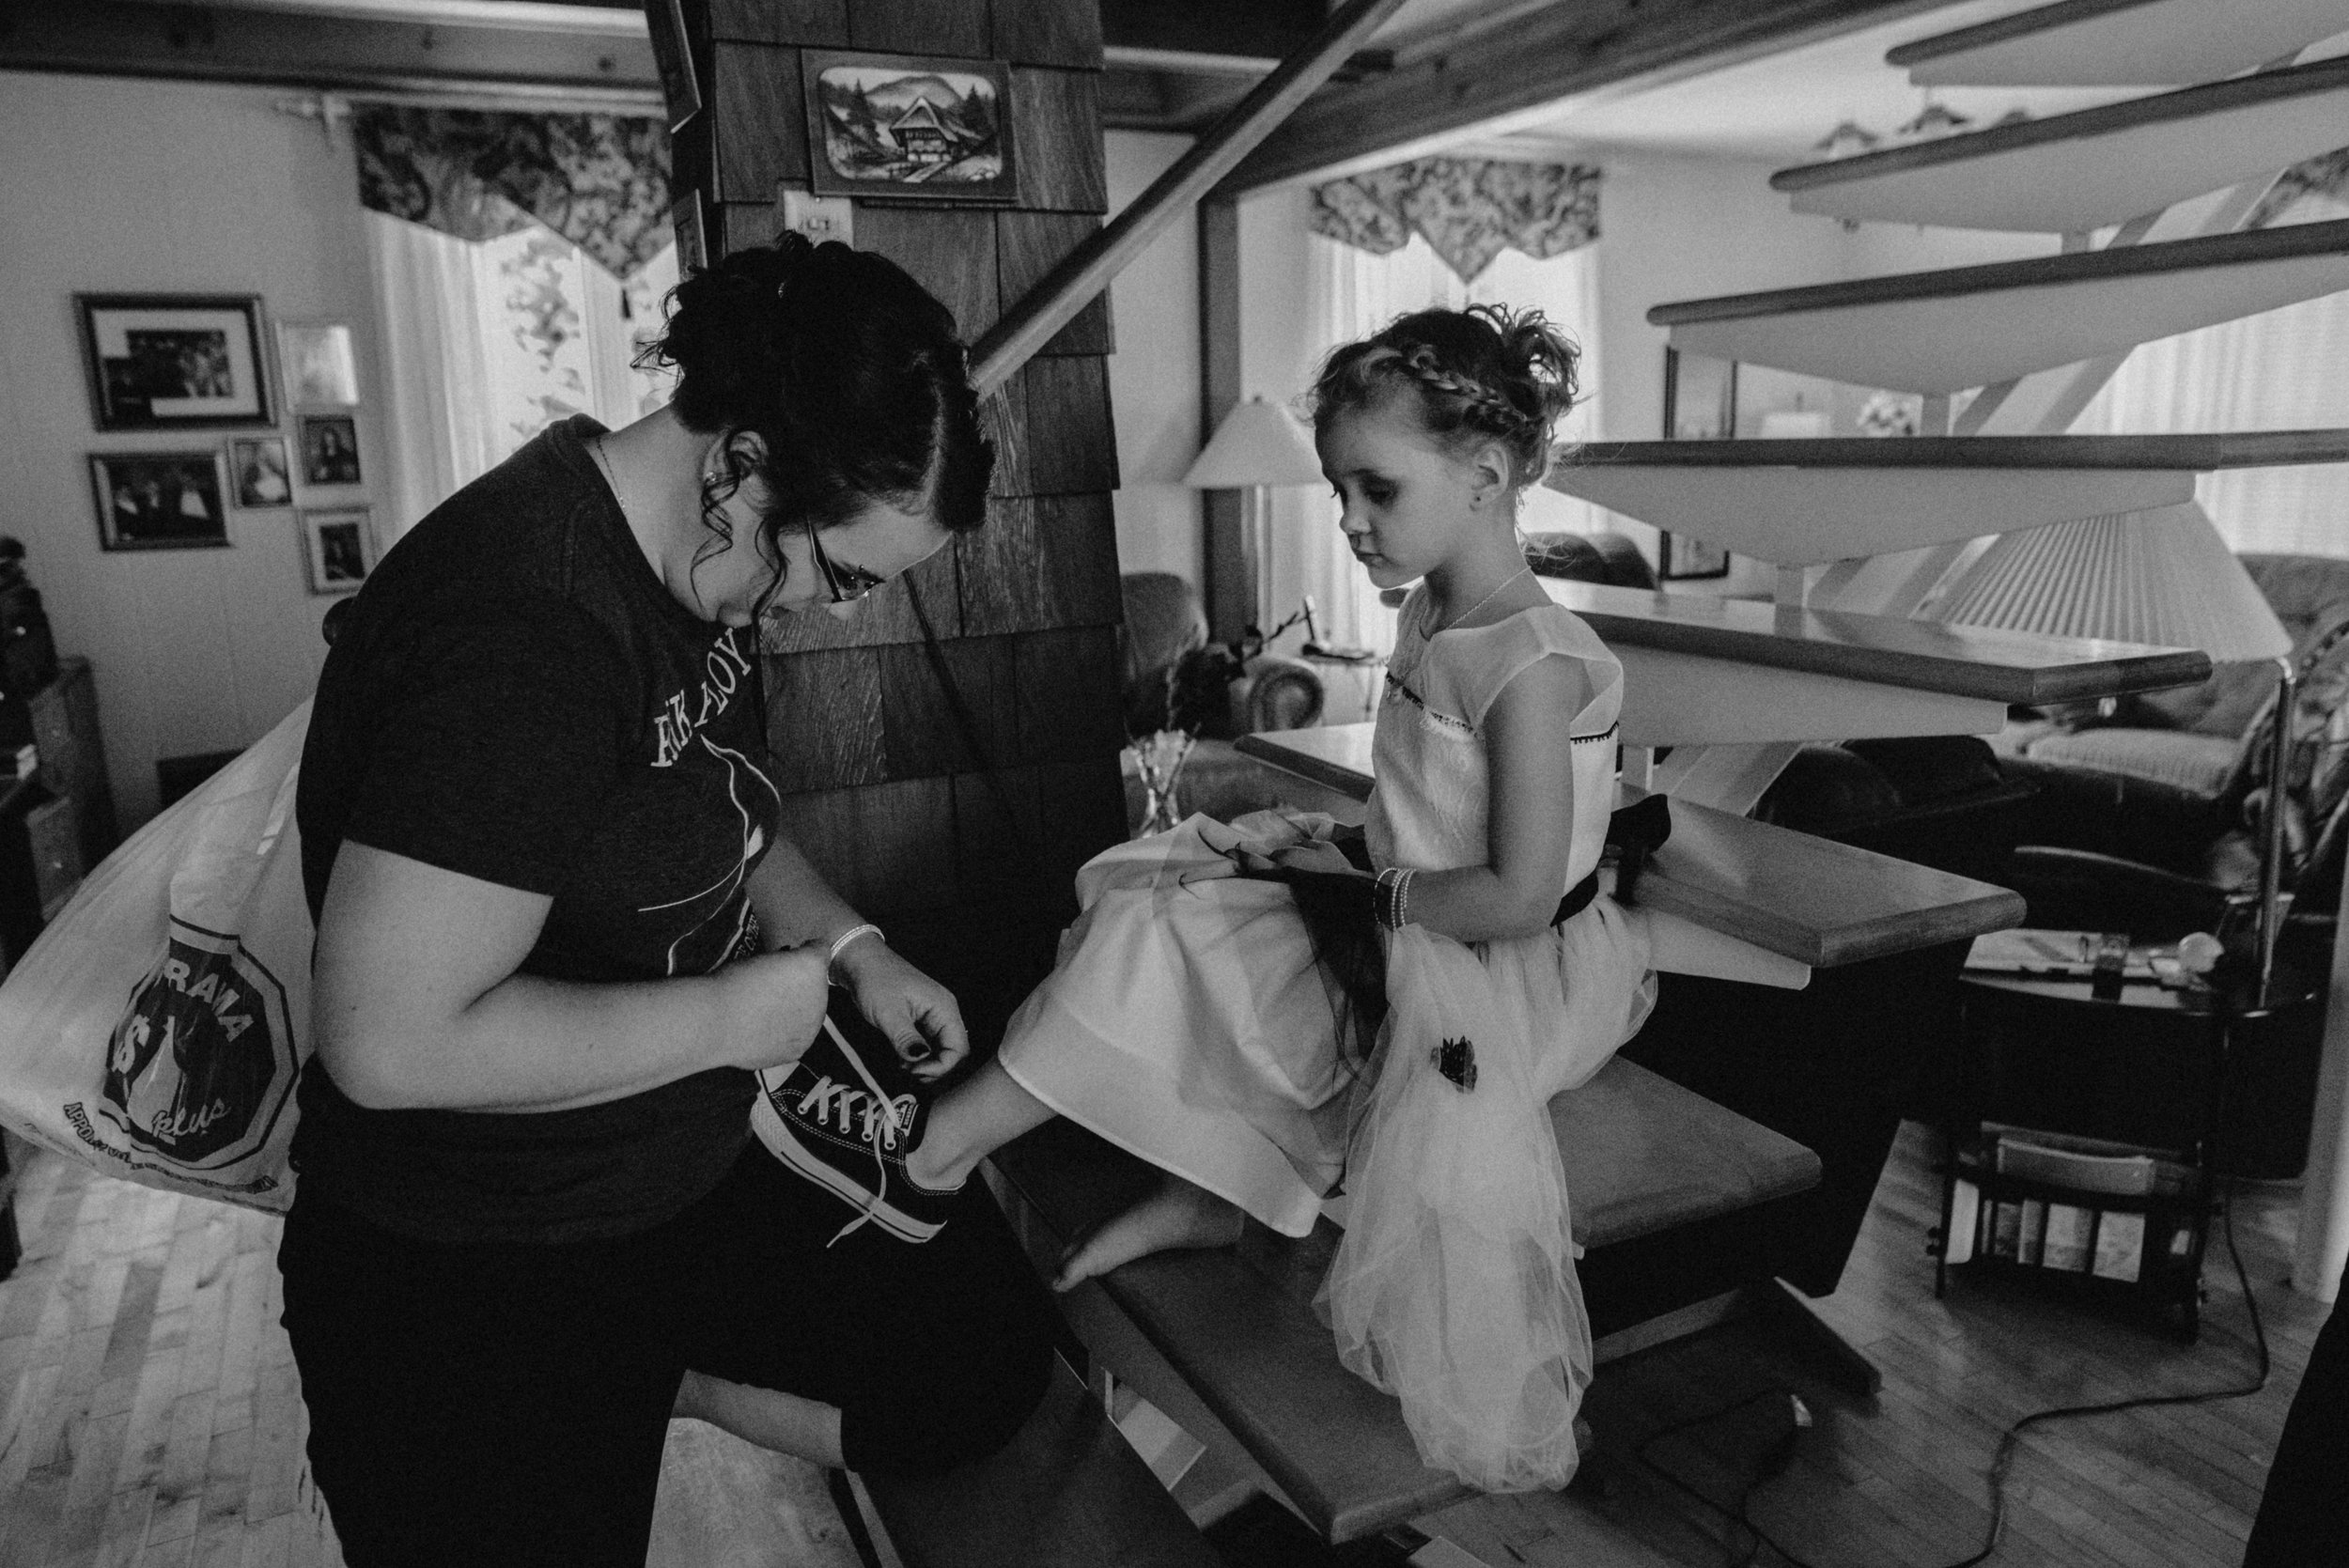 gatineau_photographe_mariage_ottawa_wedding_photographer_photography_candid_natural_moody_documentary_lifestyle (7).JPG